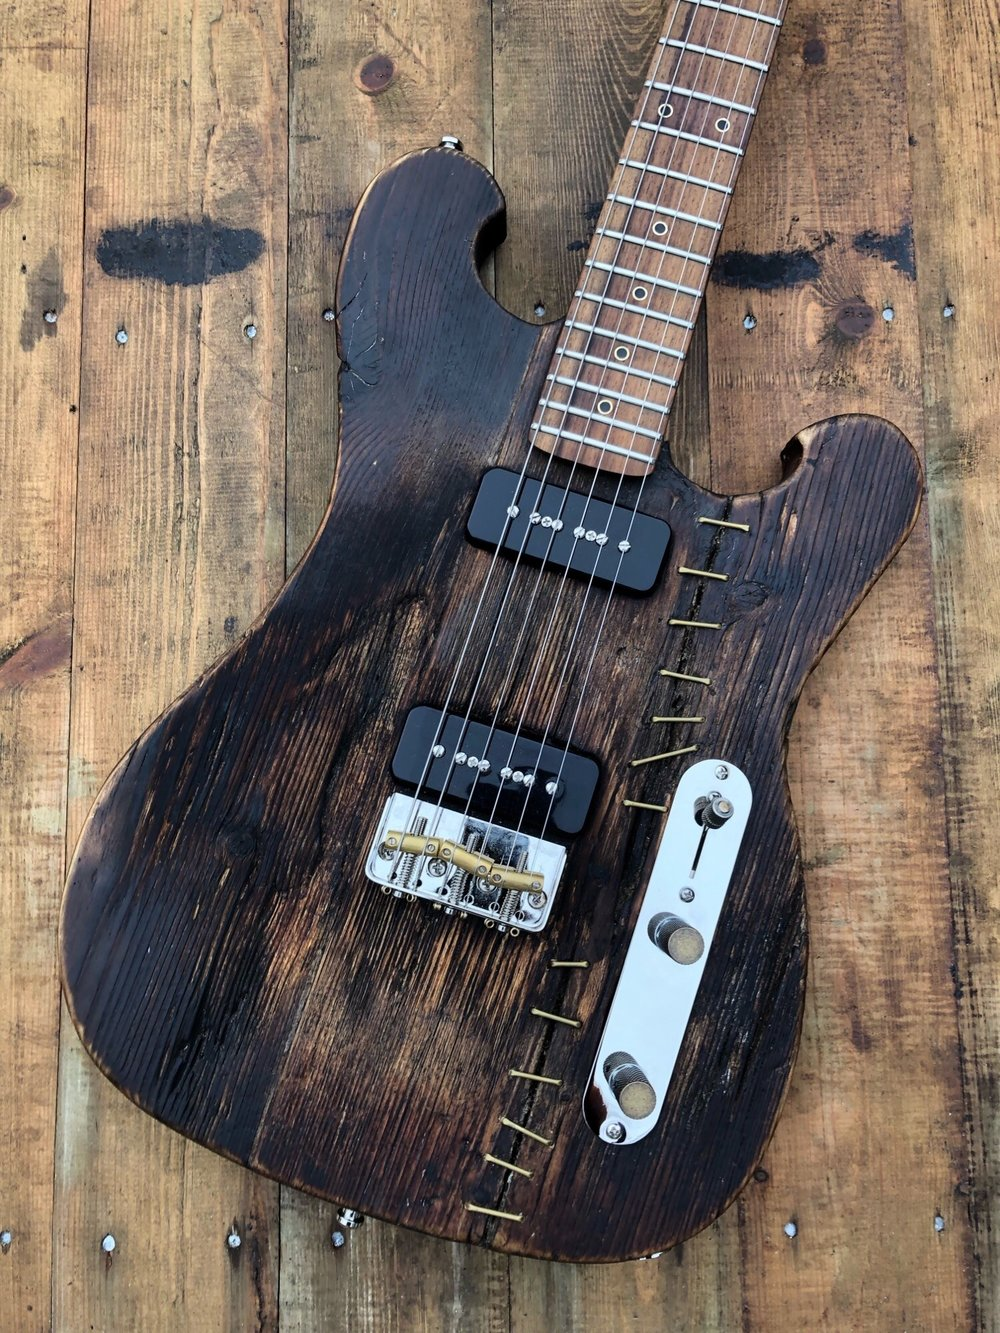 Upscaler Ram double cut T-type - Reclaimed Norwegian Spruce solid bodyRecycled Maple neckEpiphone P90 Pro pickupsNickel compensated Telecaster 1/2 bridgeNickel and brass hardwareKluson nickel mini buttons tuners500K CTS potentiometers.22 Tropical Fish capacitor